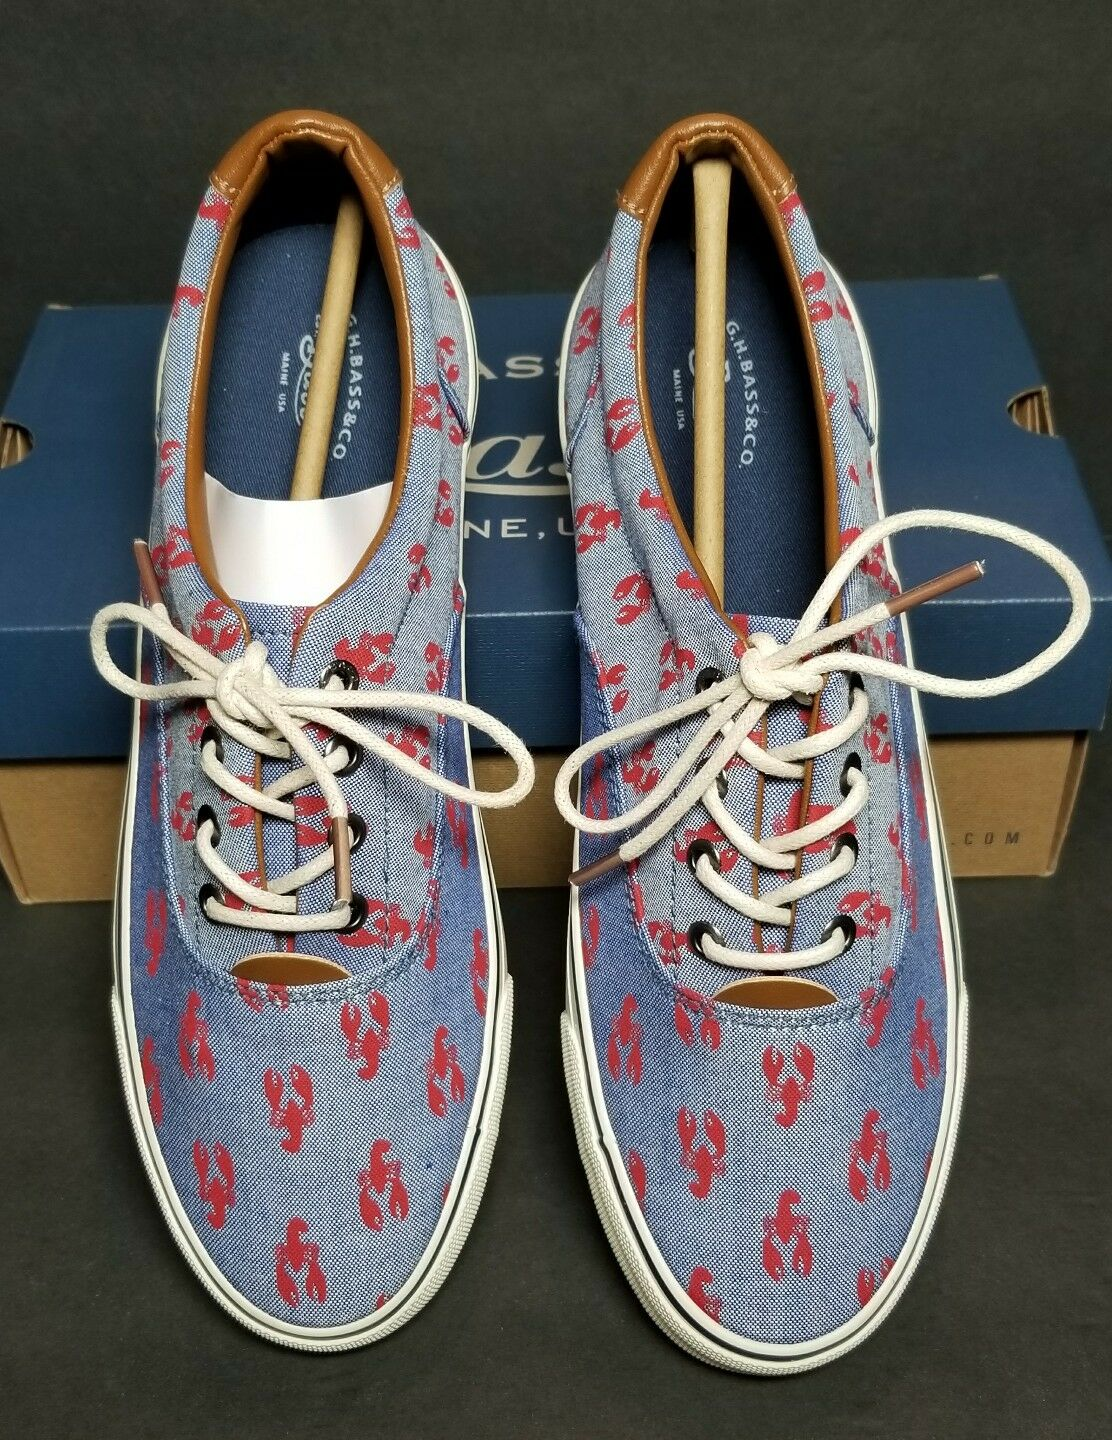 G H BASS SNEAKERS WOMEN'S MULTIPLE SIZES NEW / BOX ROT LOBSTER 0253-3522-075